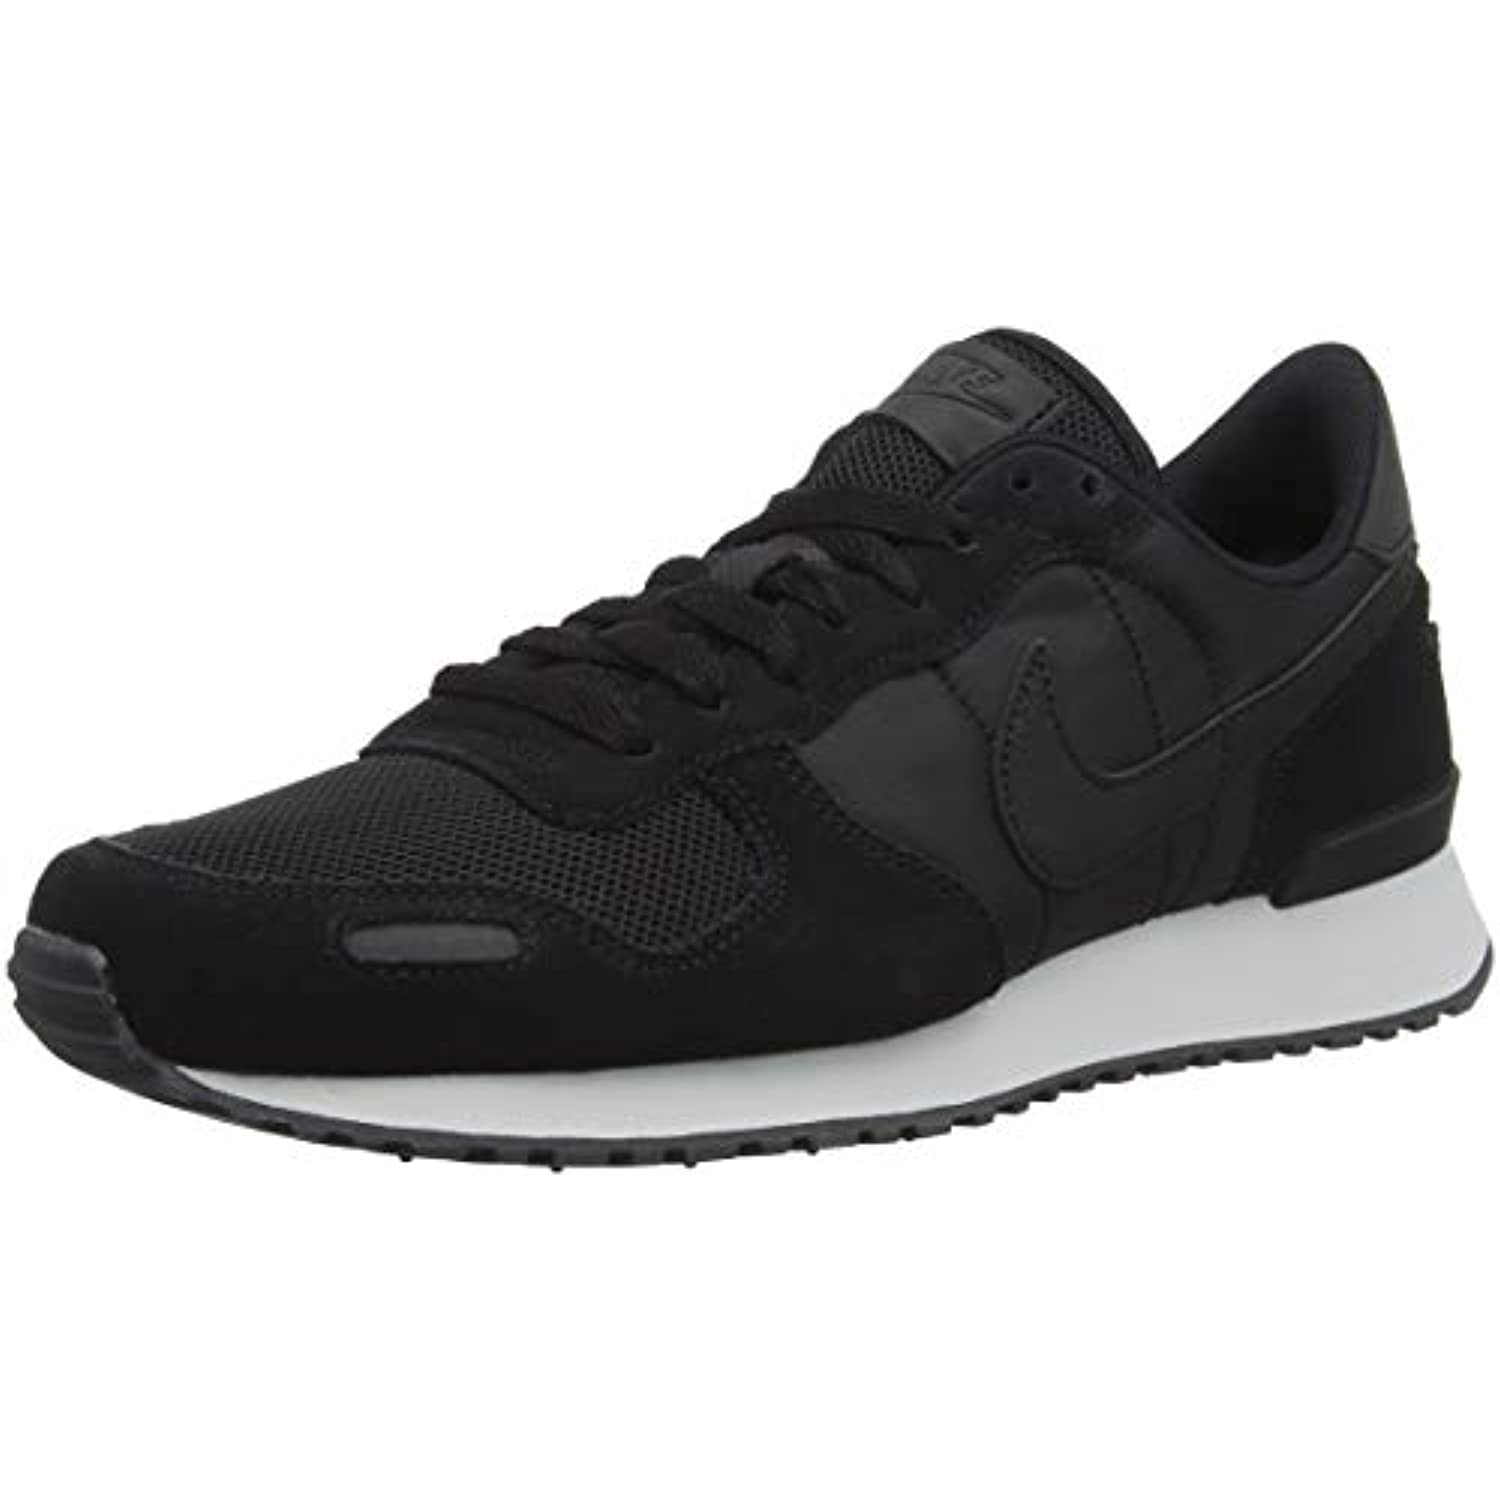 NIKE Air Vrtx, Baskets Basses Homme - - B07D437TFW - Homme 4702d9